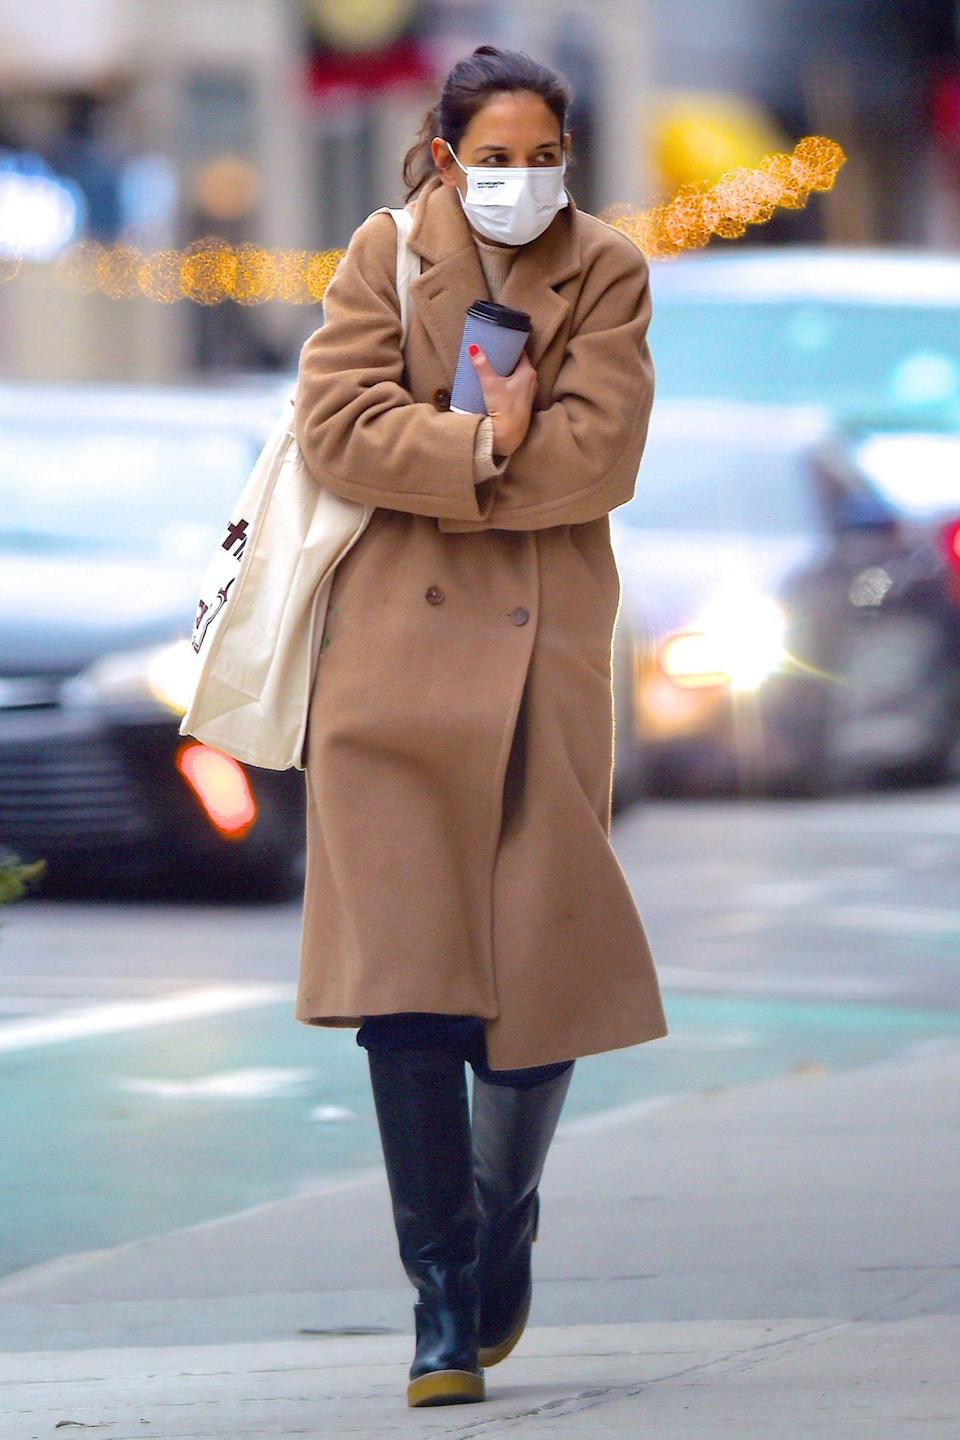 <p>Ahead of the overnight snowstorms on the East Coast, Katie Holmes bundles up for a wintry walk in New York City on Wednesday.</p>